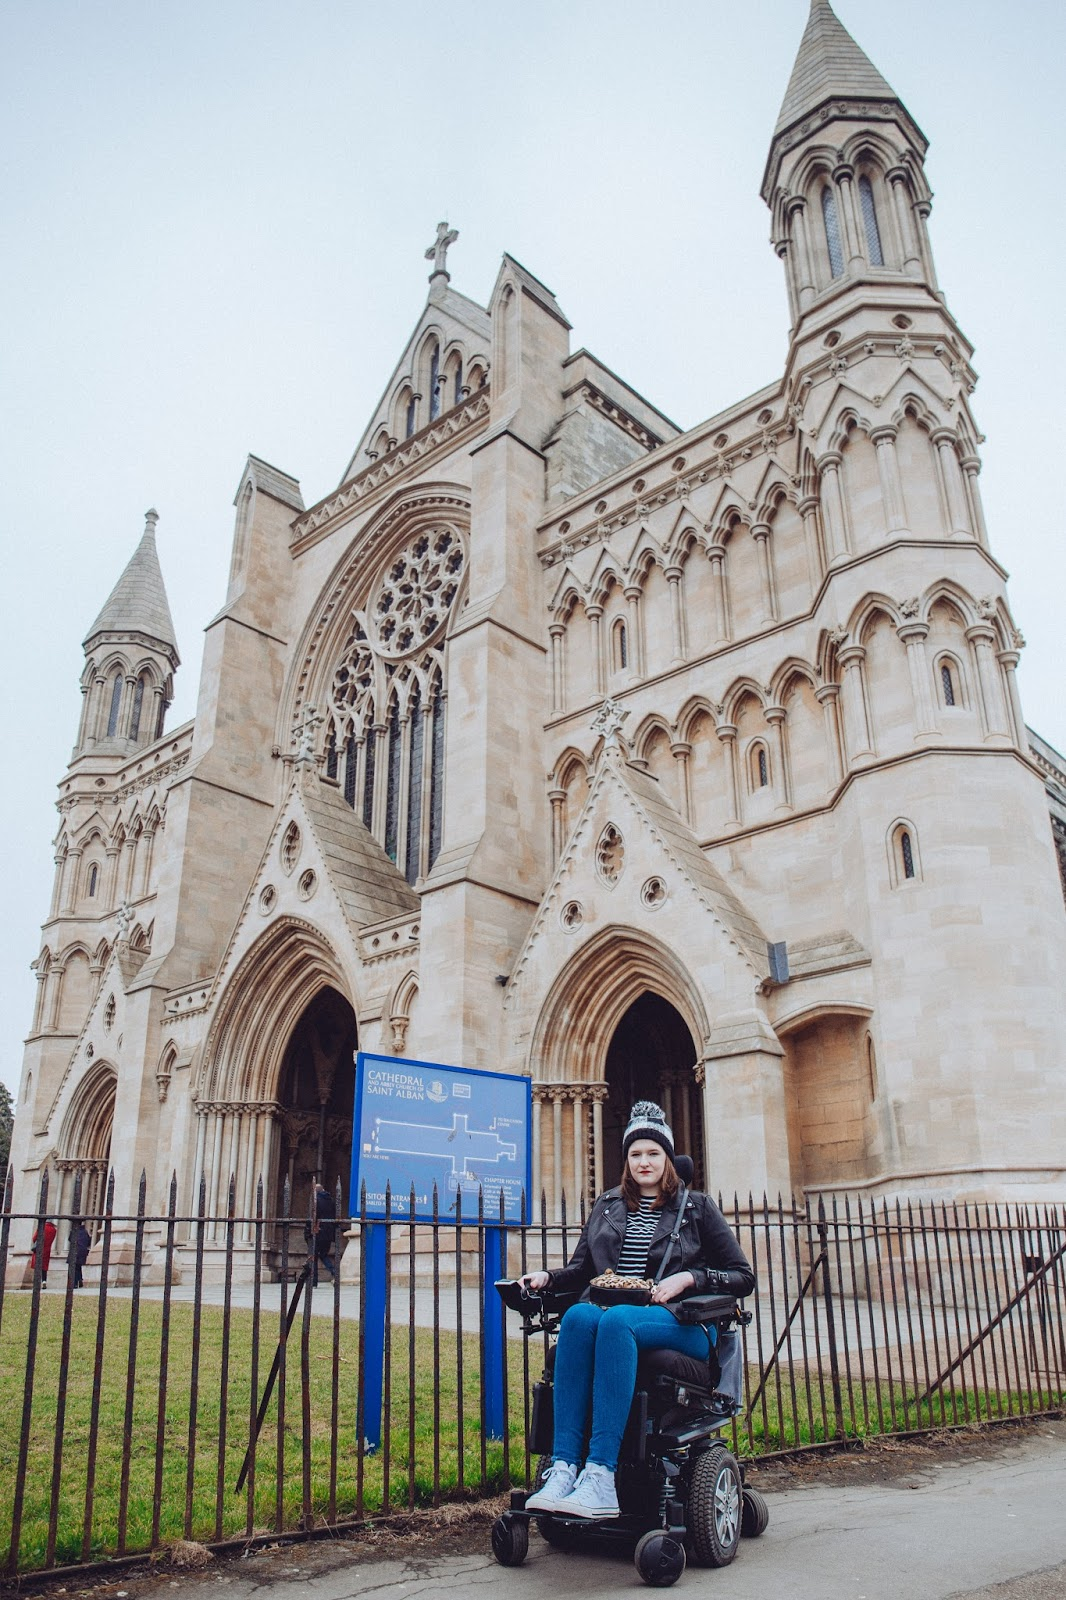 Image of Shona, sitting in her powerchair, in front of a cathedral with metal fencing directly behind her.